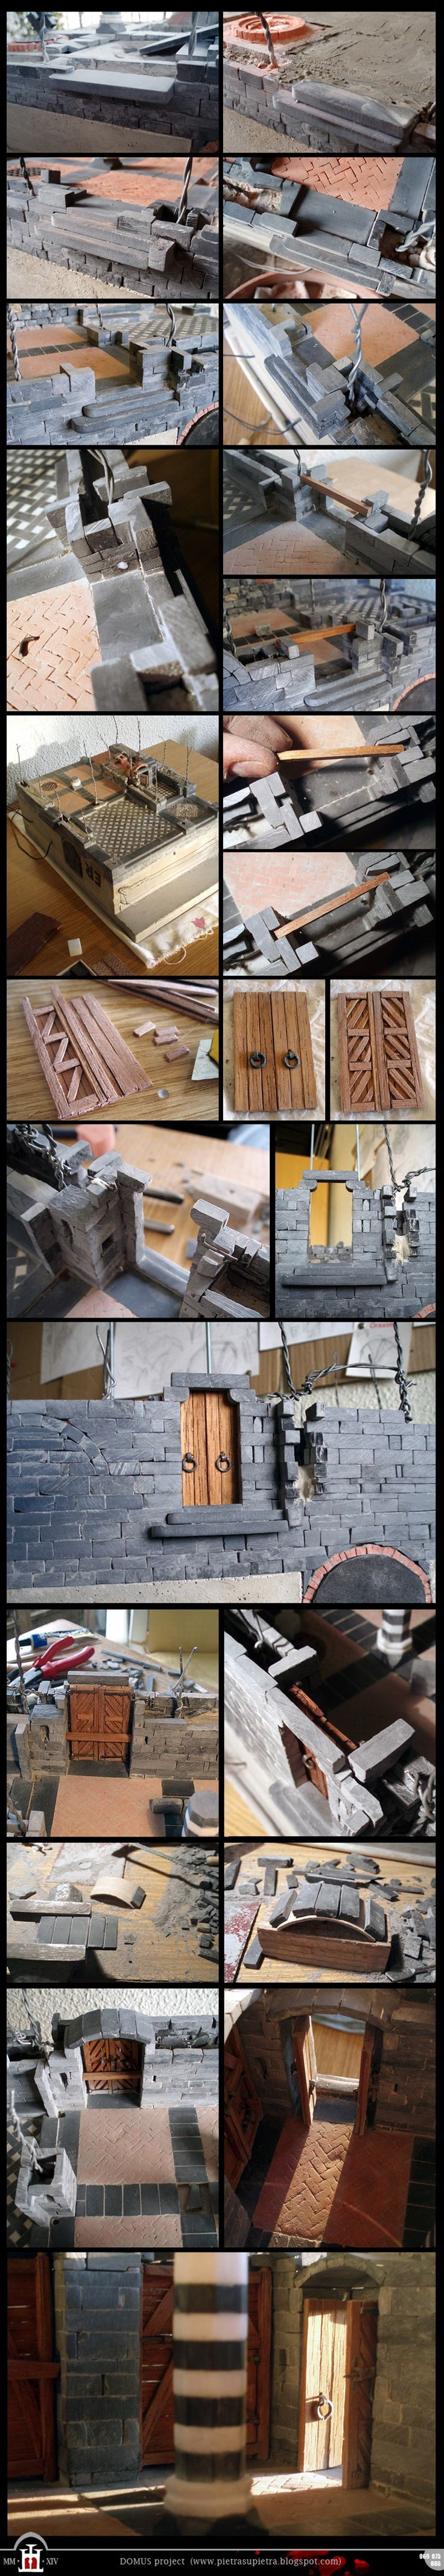 Domus project 69-75-86 - Door of the courtyard  The Domus project is the construction in scale 1:50 of an imaginary medieval palace. It's made of clay, stones, slate, wood and other construction materials in the style of rich genoese buildings from the middle of XIV century.